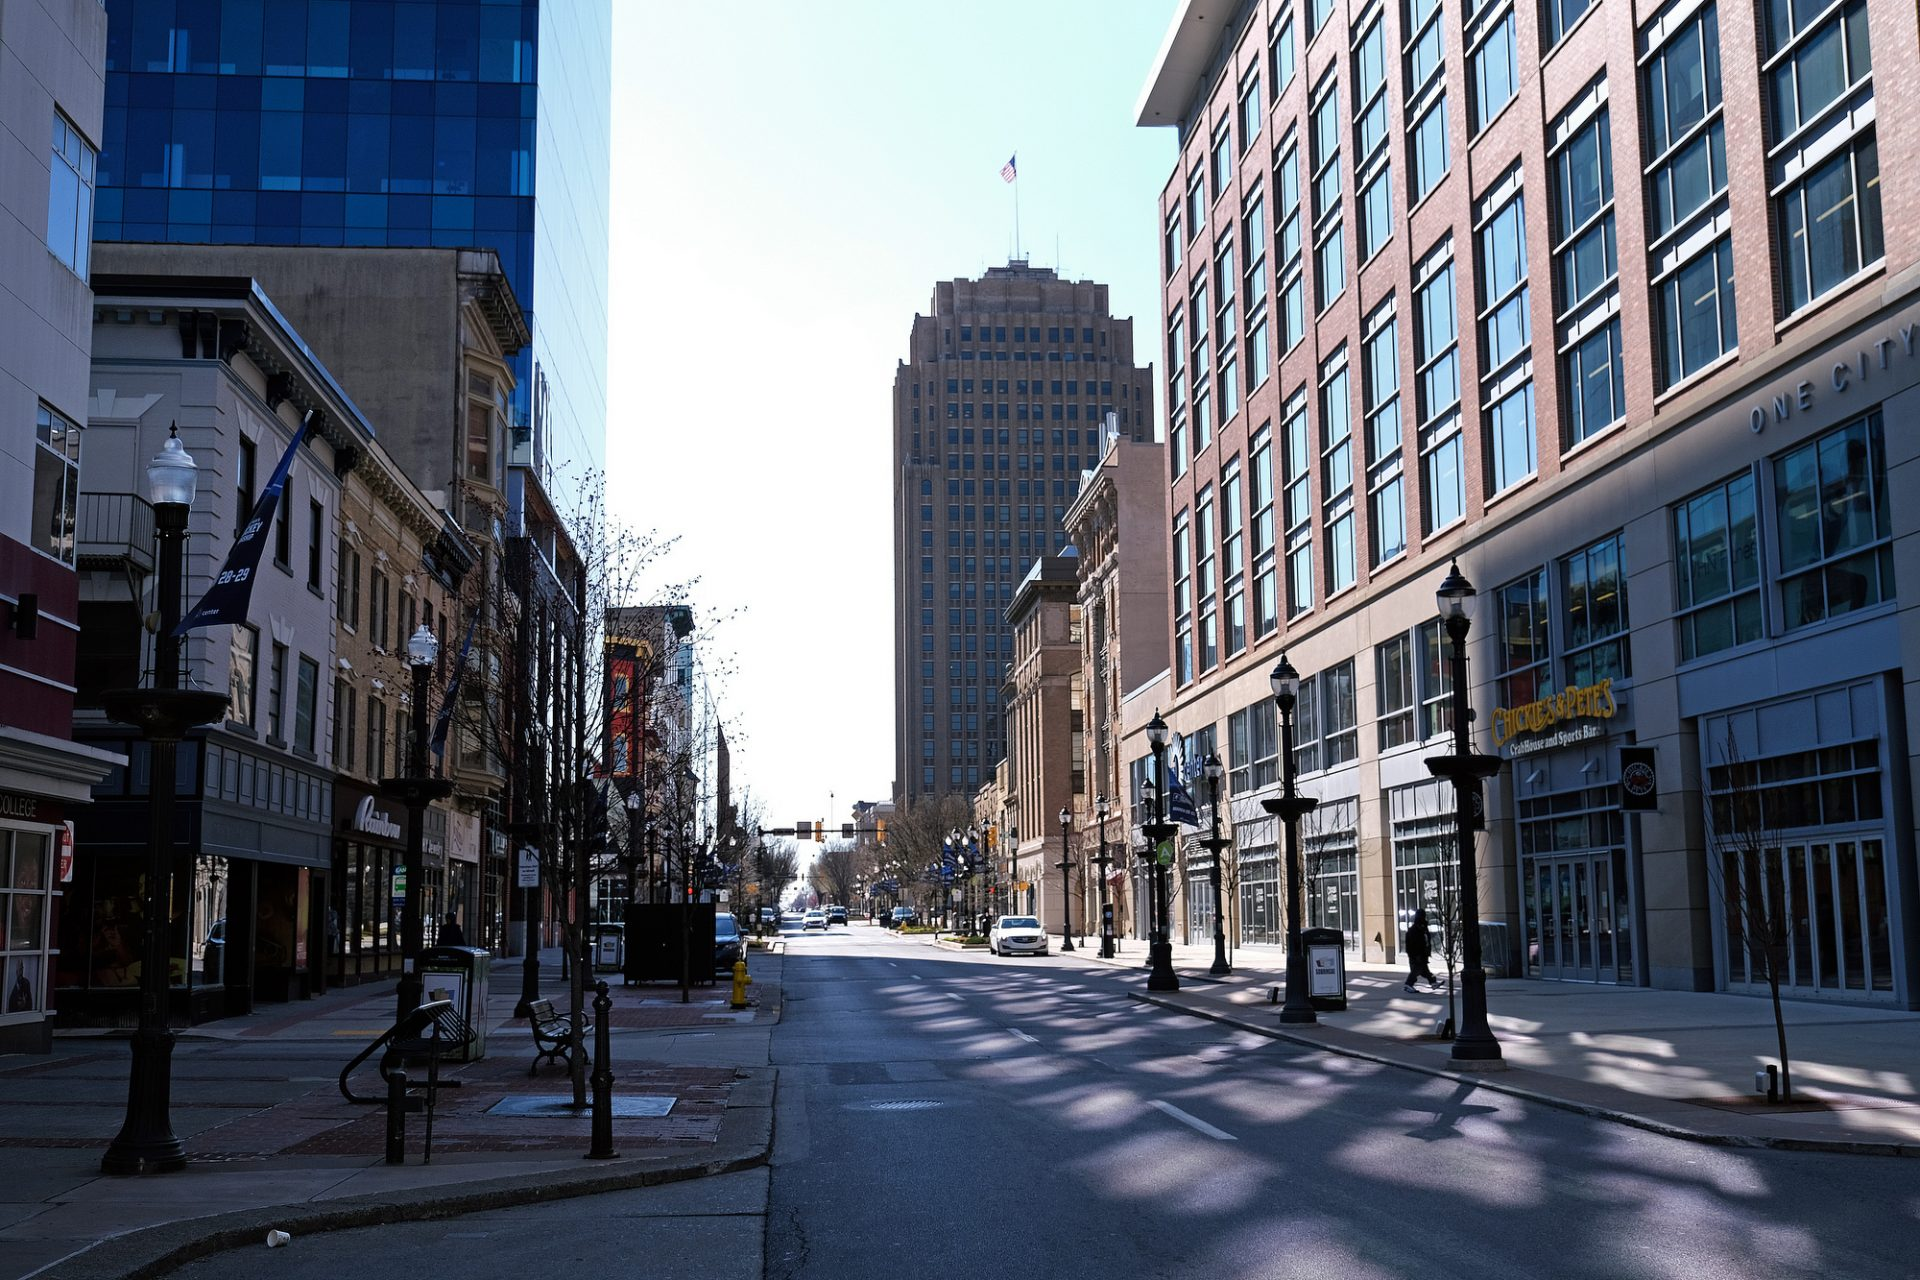 Downtown Allentown, empty on Hamilton Street as communities across the Lehigh Valley adjust to life during the coronavirus pandemic.